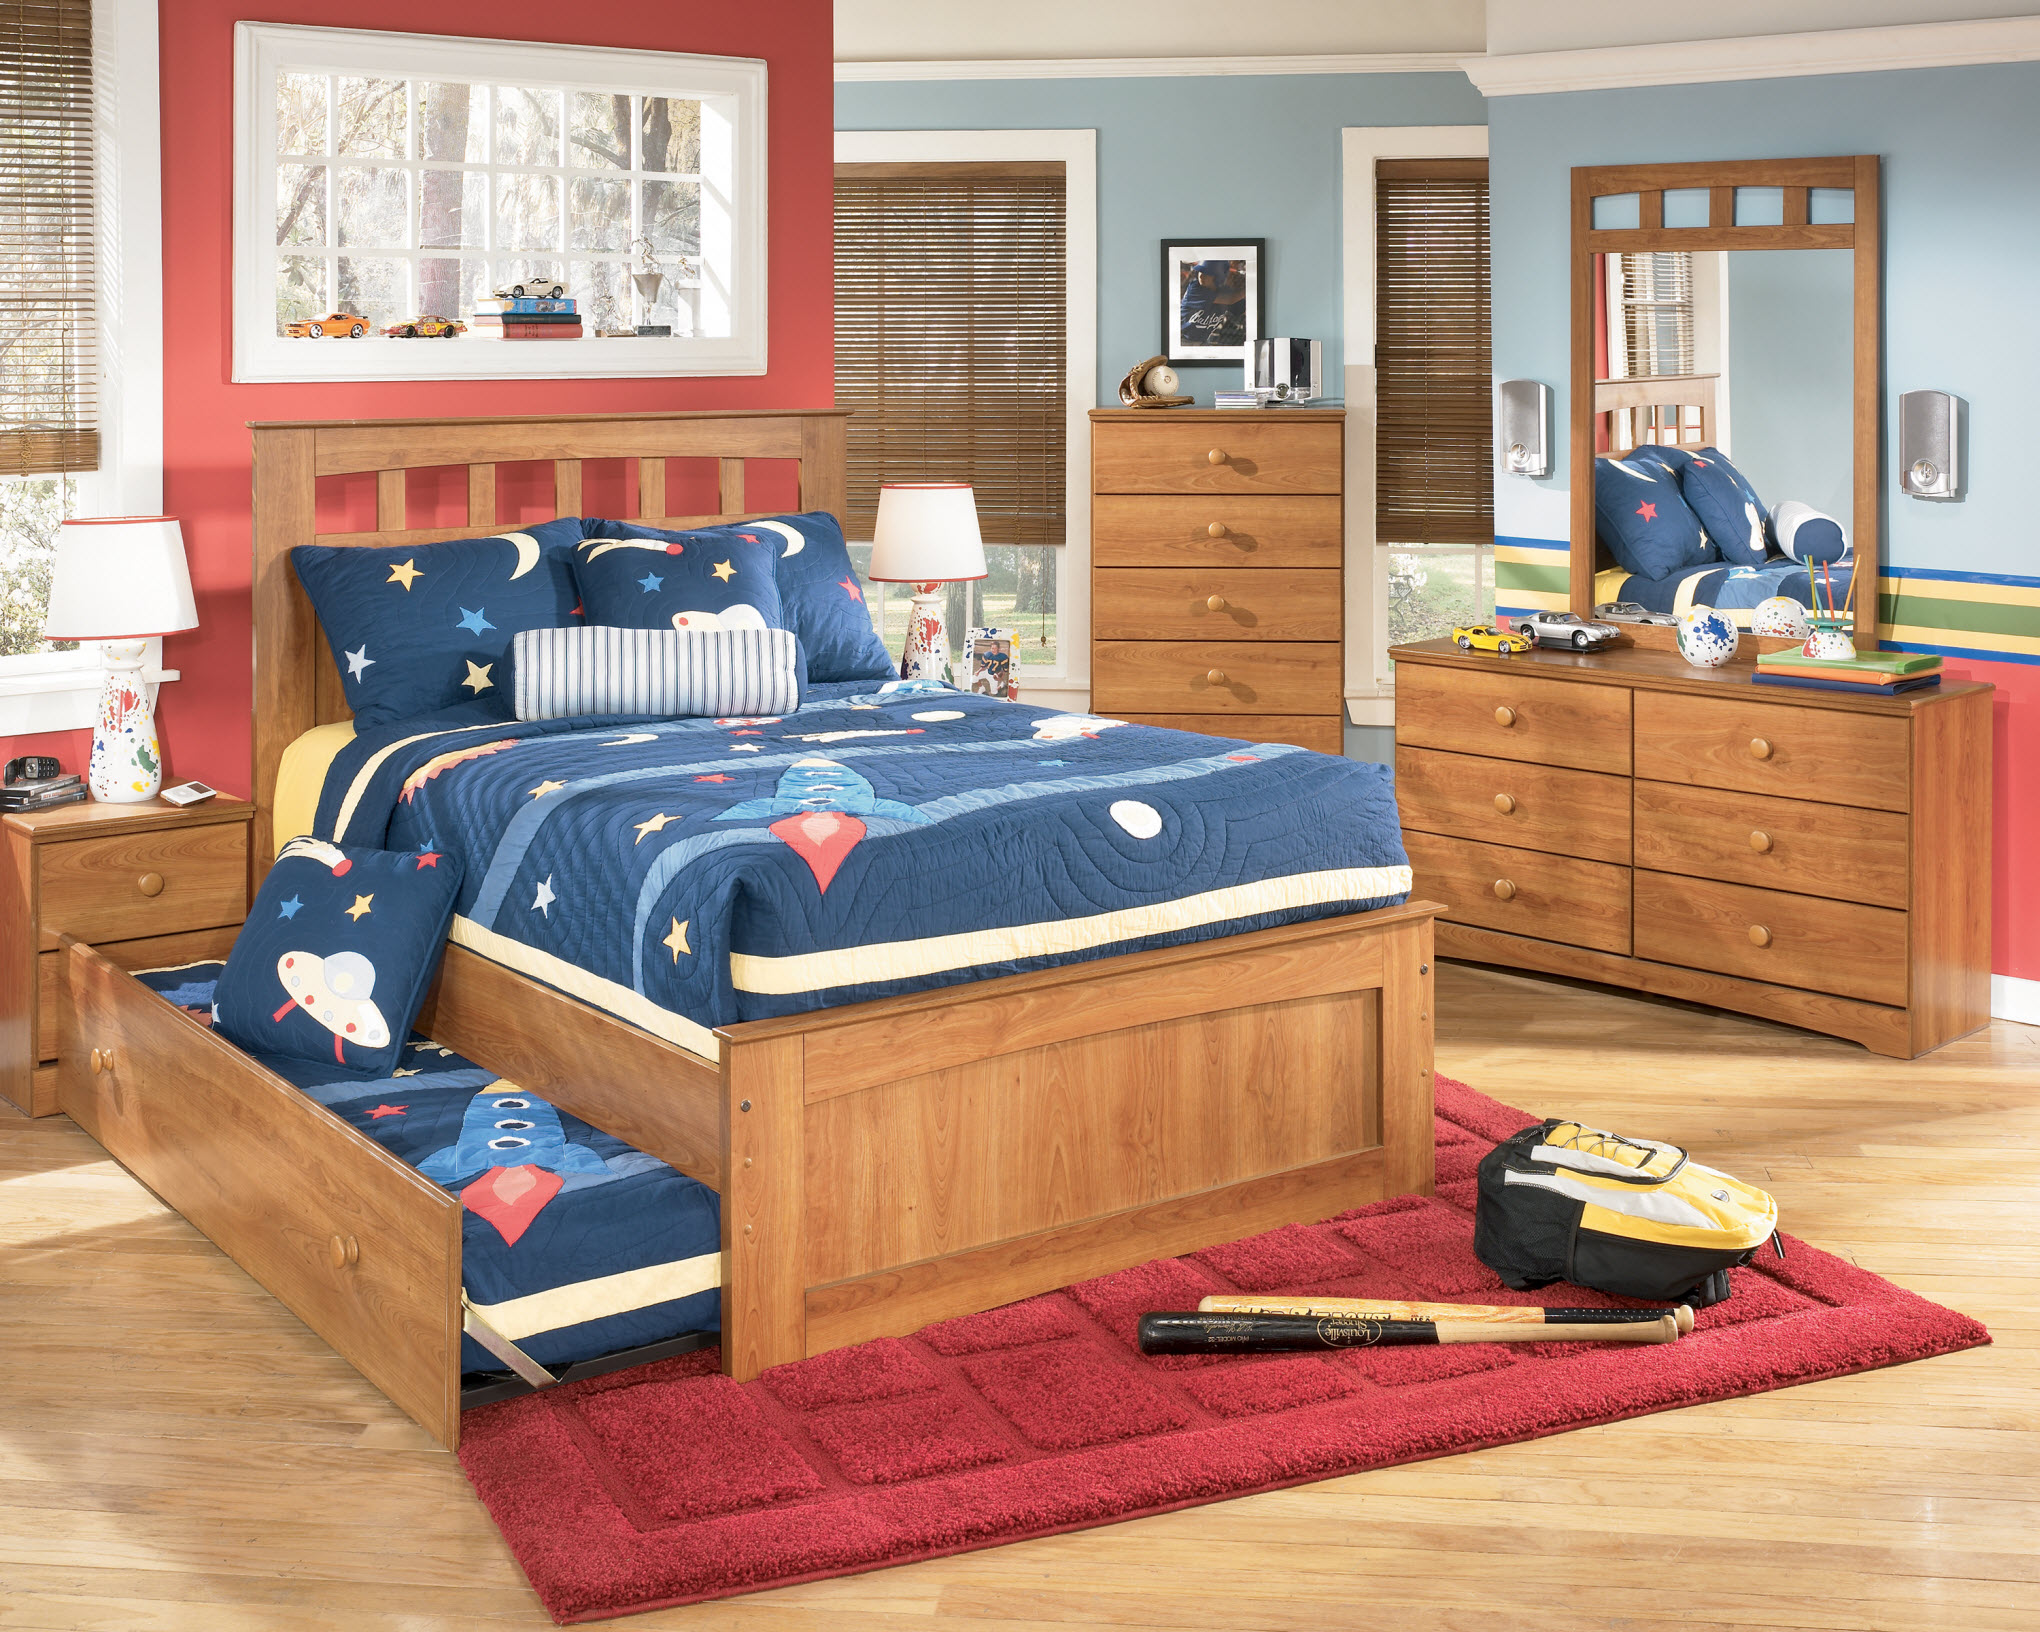 Photos of 16 Cool Boys Bedroom Sets Ideas Ome Speak Boys Bedroom Sets Boys Bedroom boys bedroom furniture